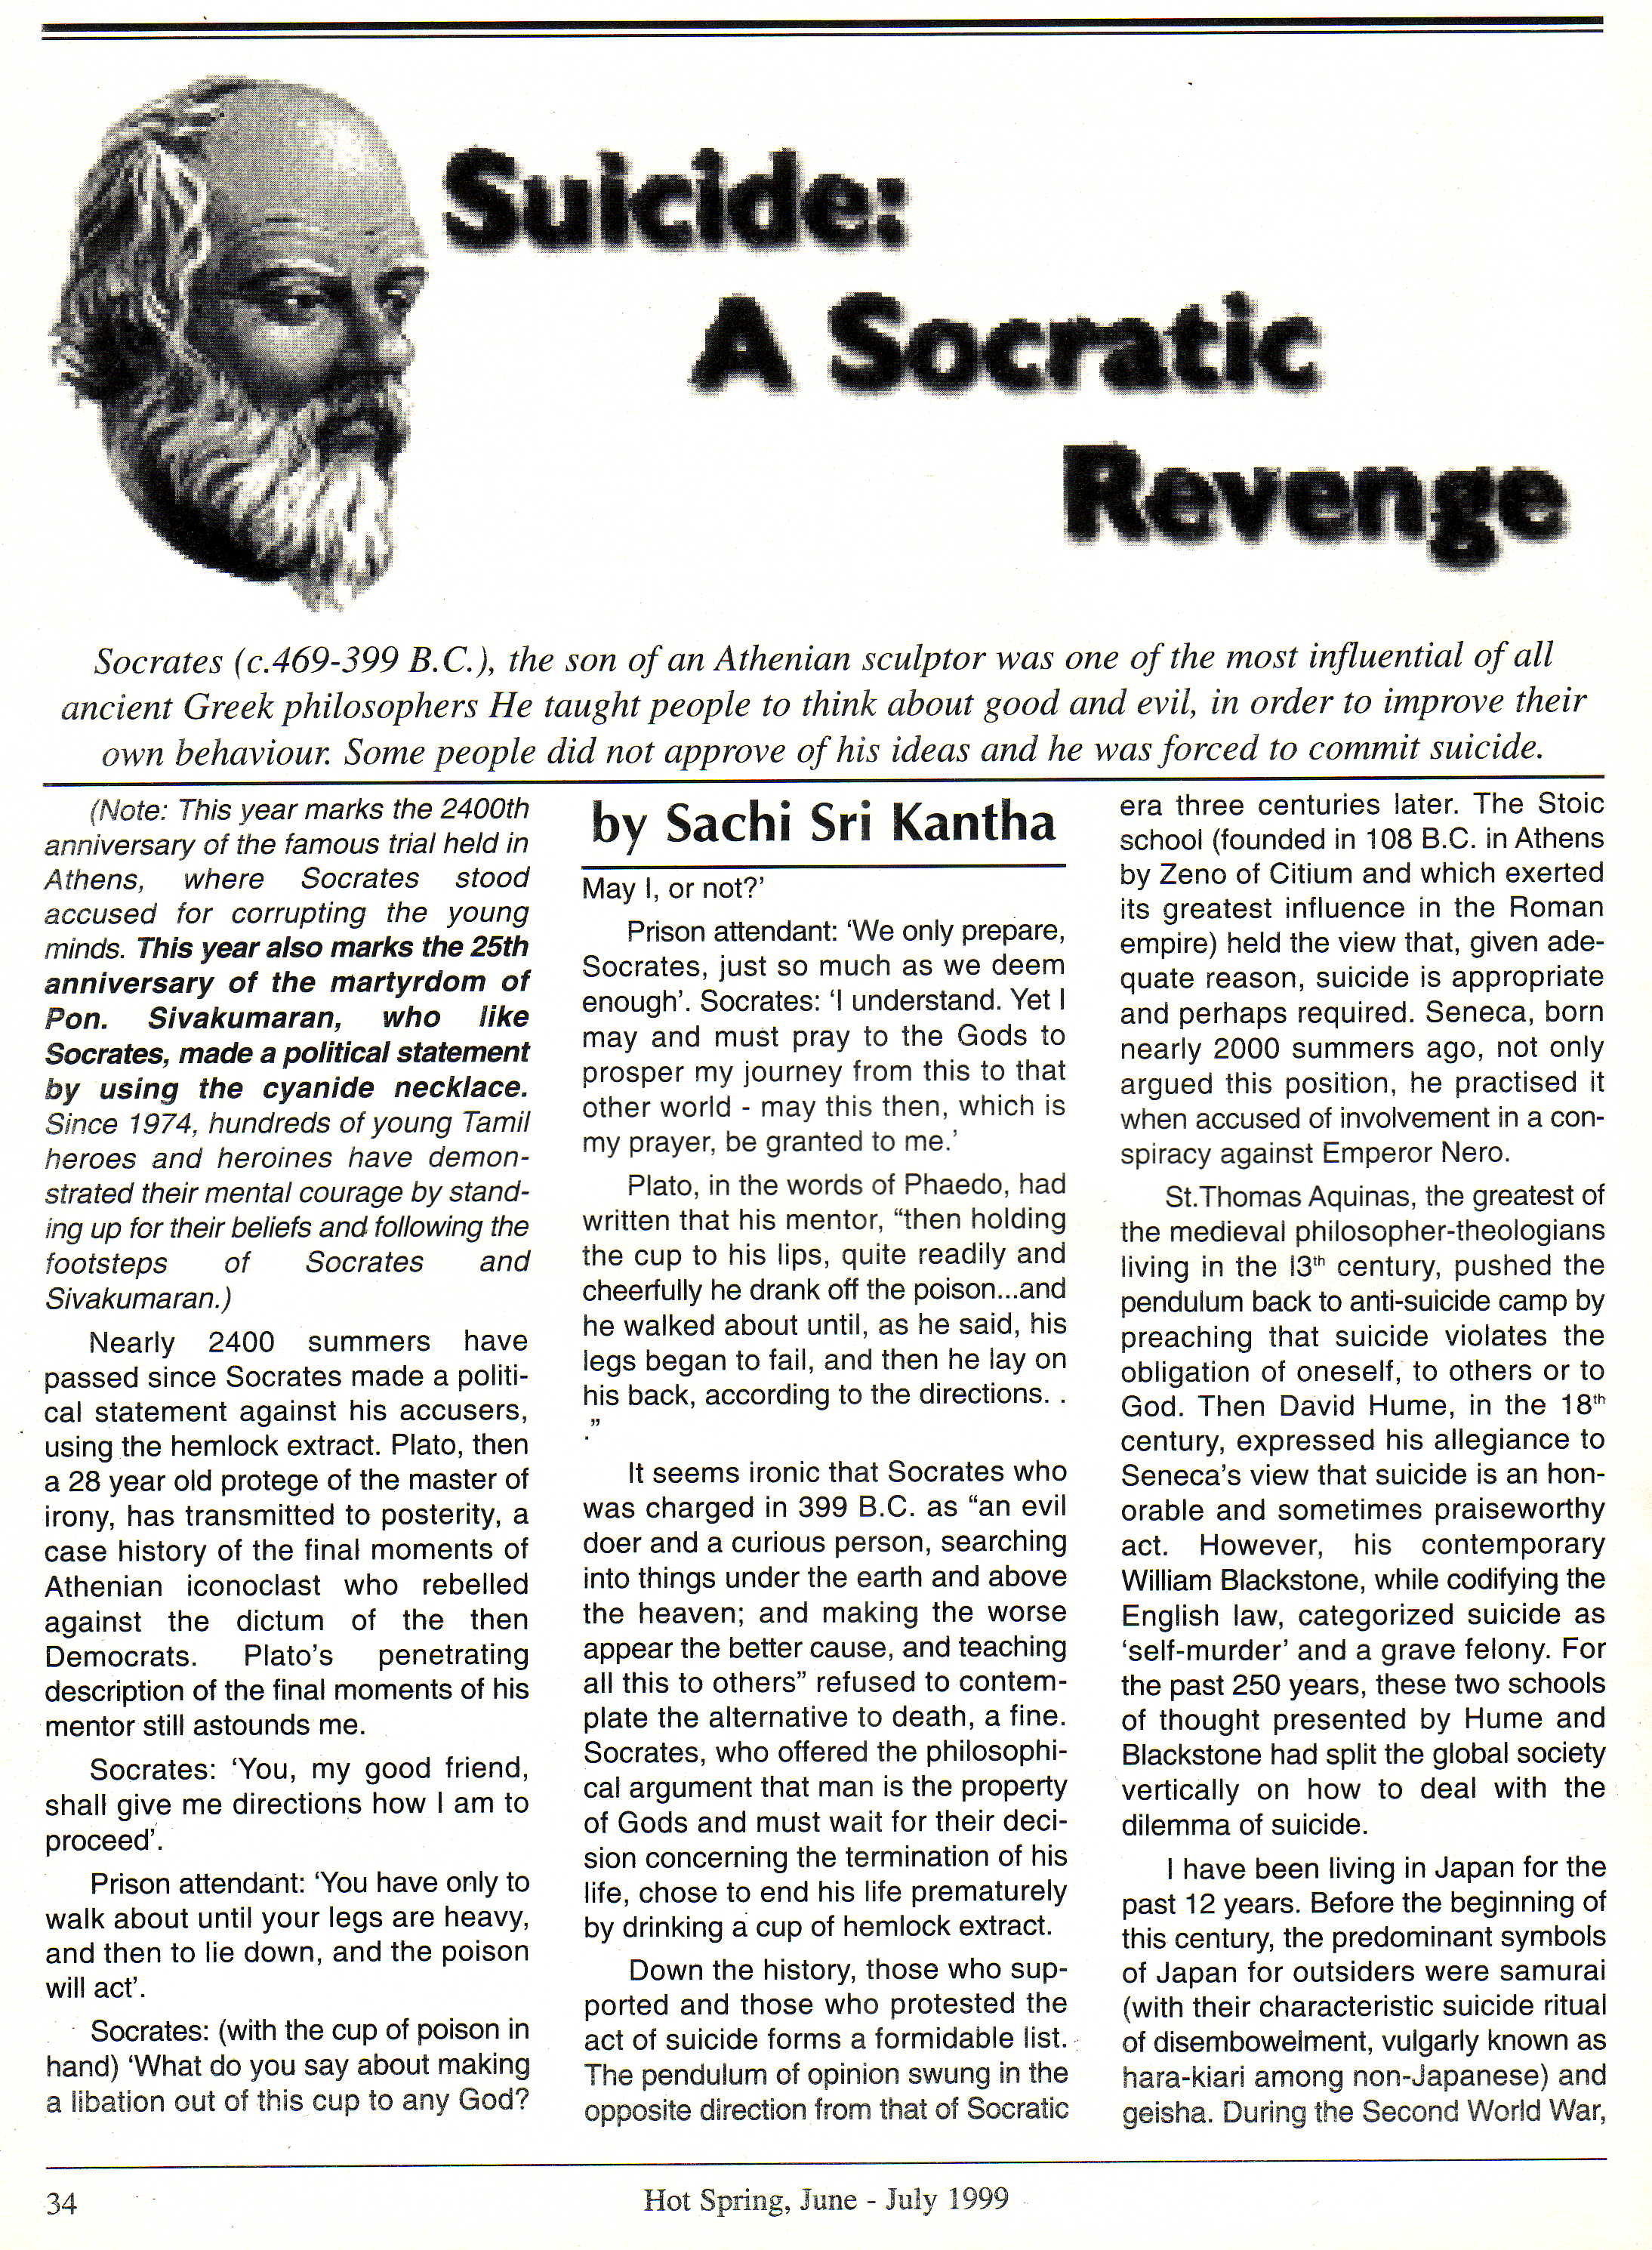 Socrates and Sivakumaran mentioned by Sachi in 1999